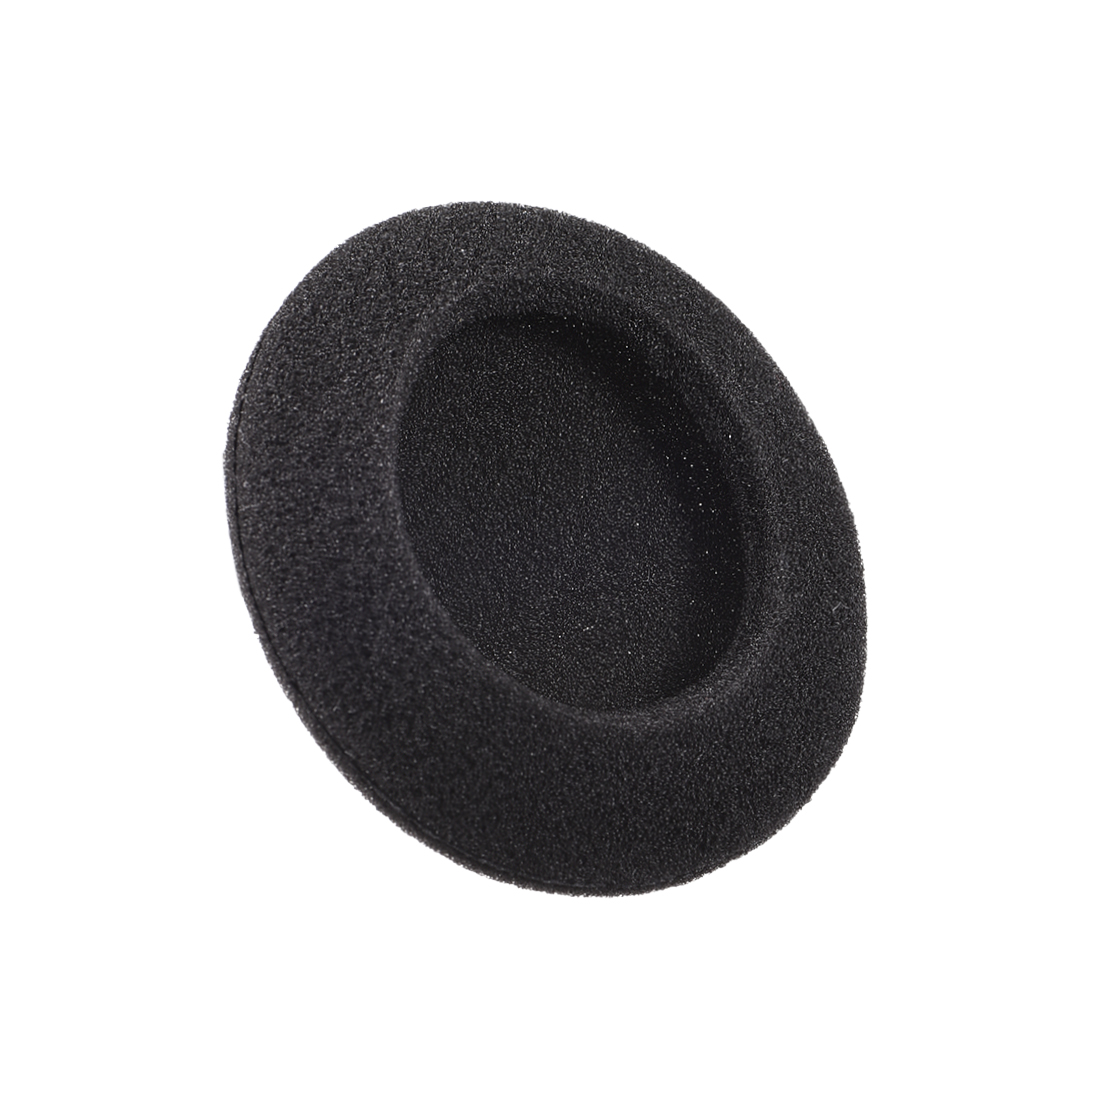 50mm Earphone Foam Ear Pad Sponge Cover For Headphone Headset Black 20pcs